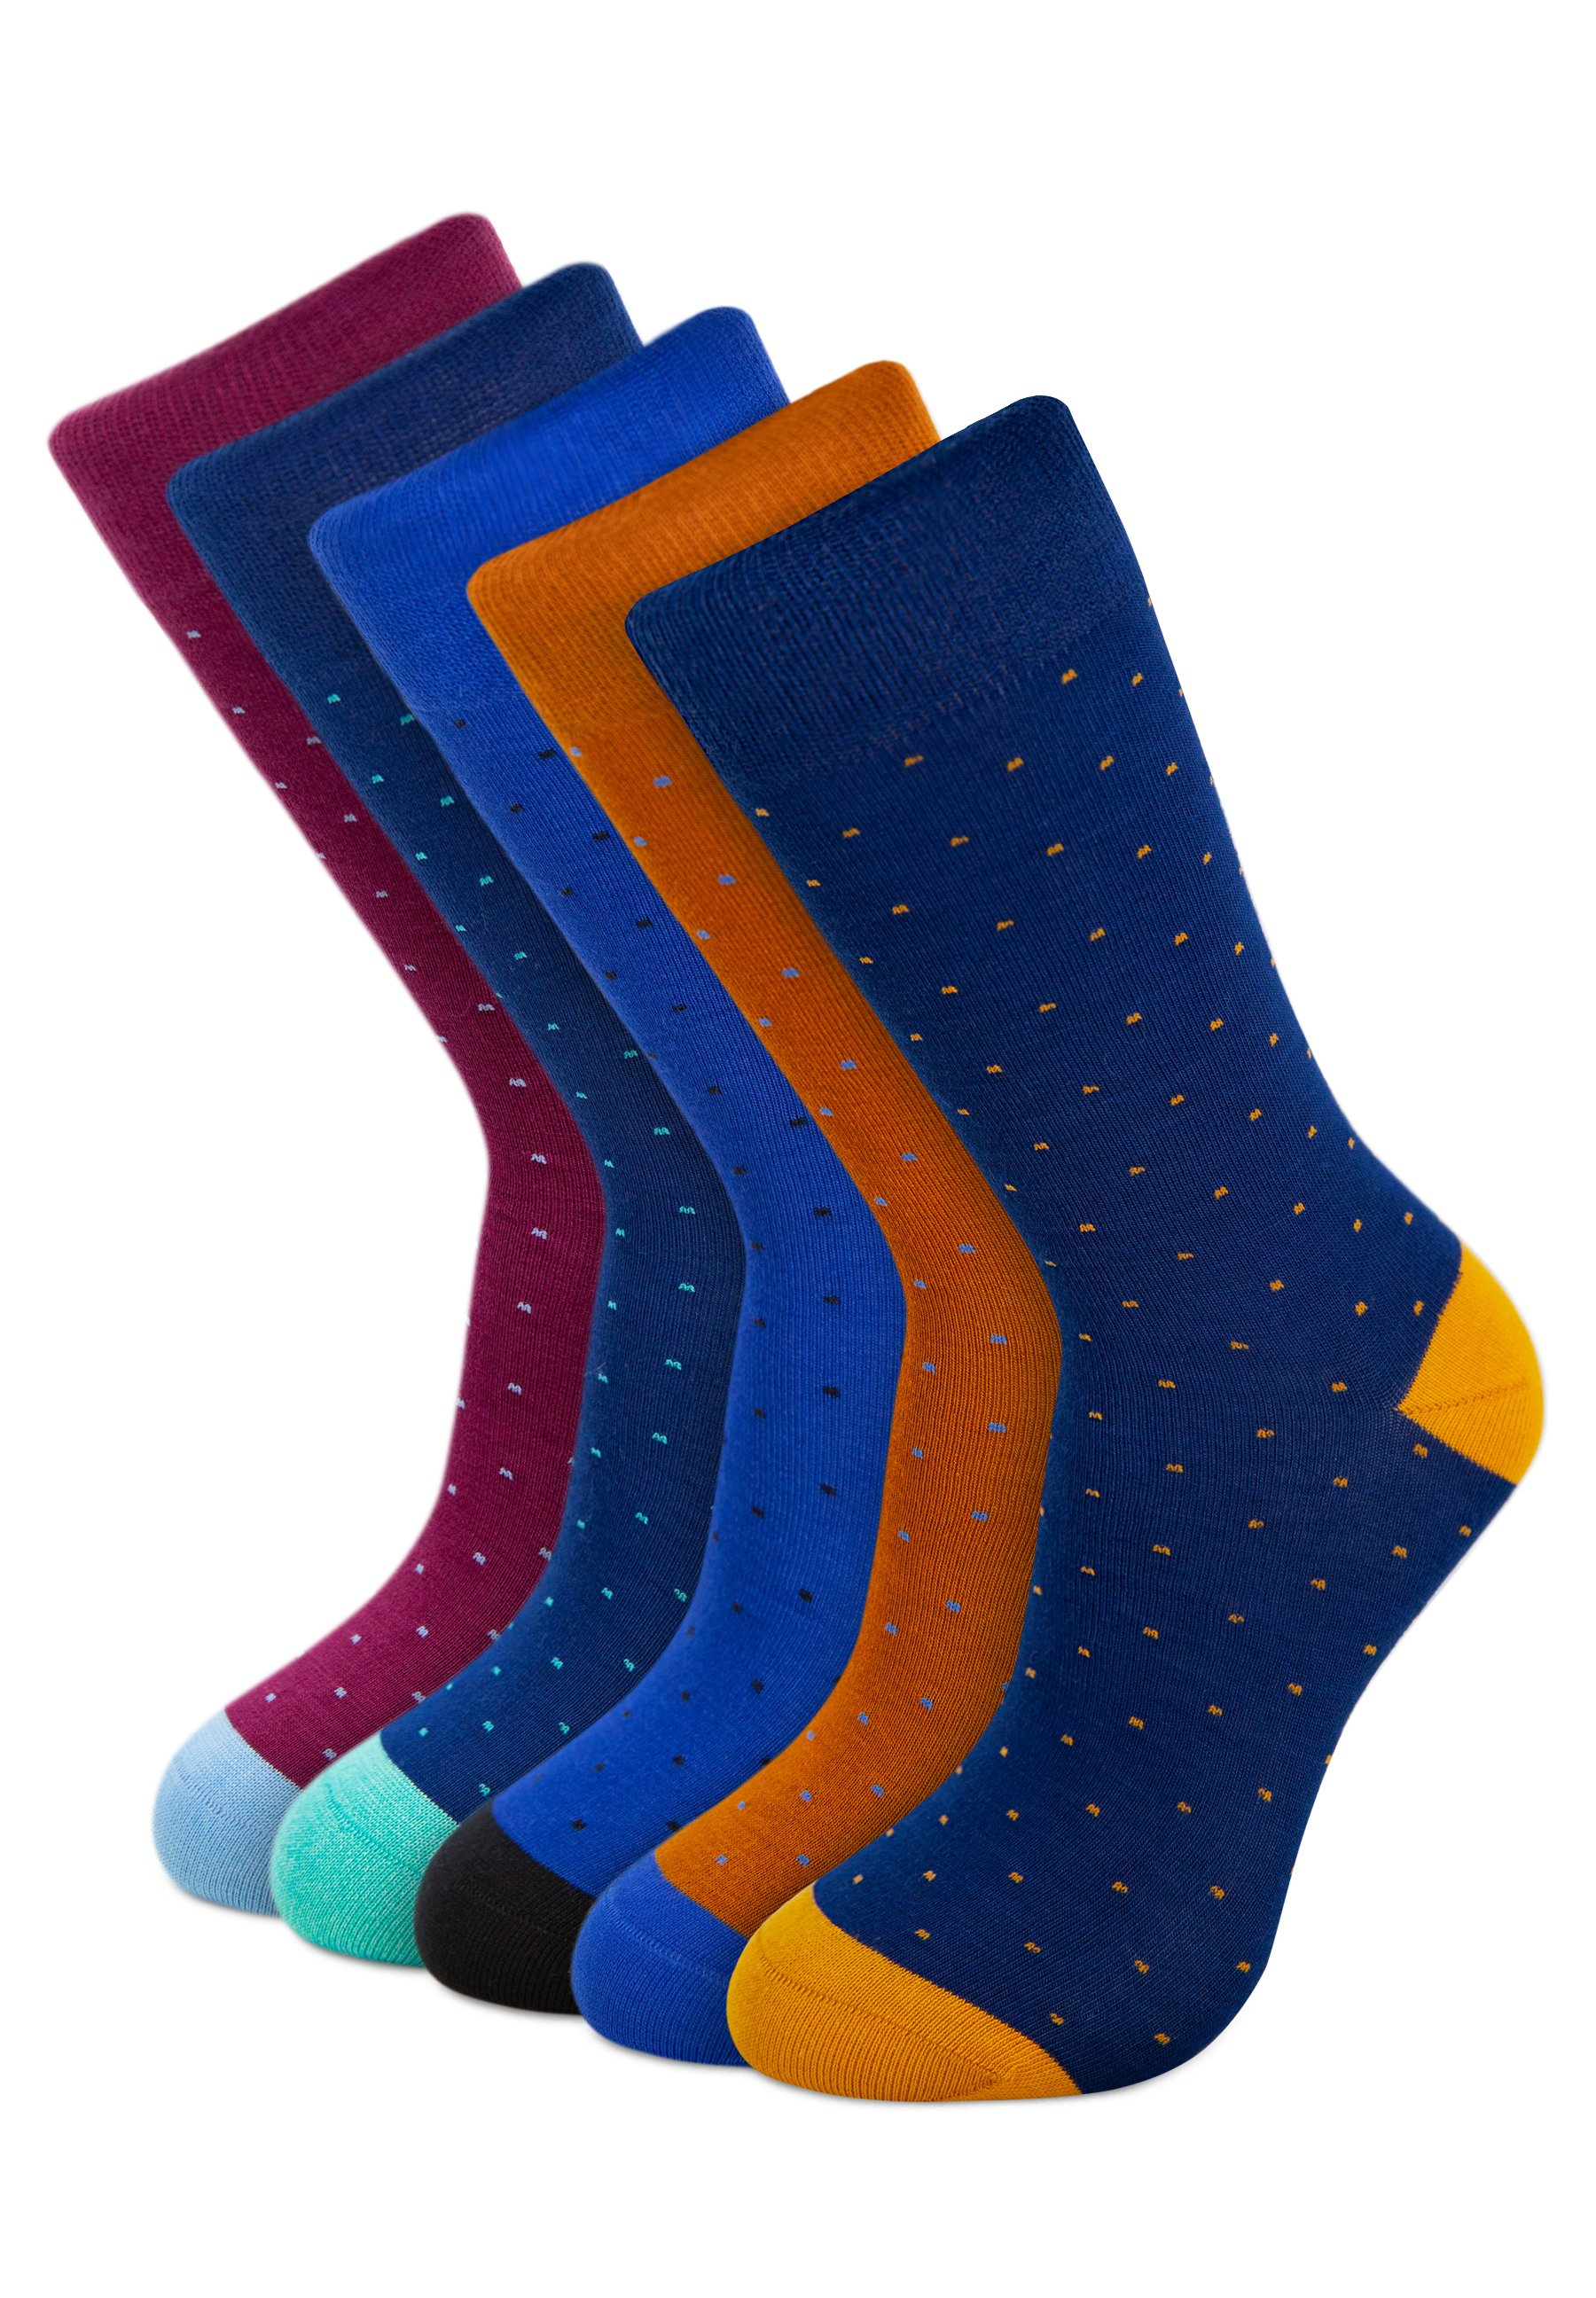 Uomo DOTS EDITION BAMBOO 5 PACK - Calze